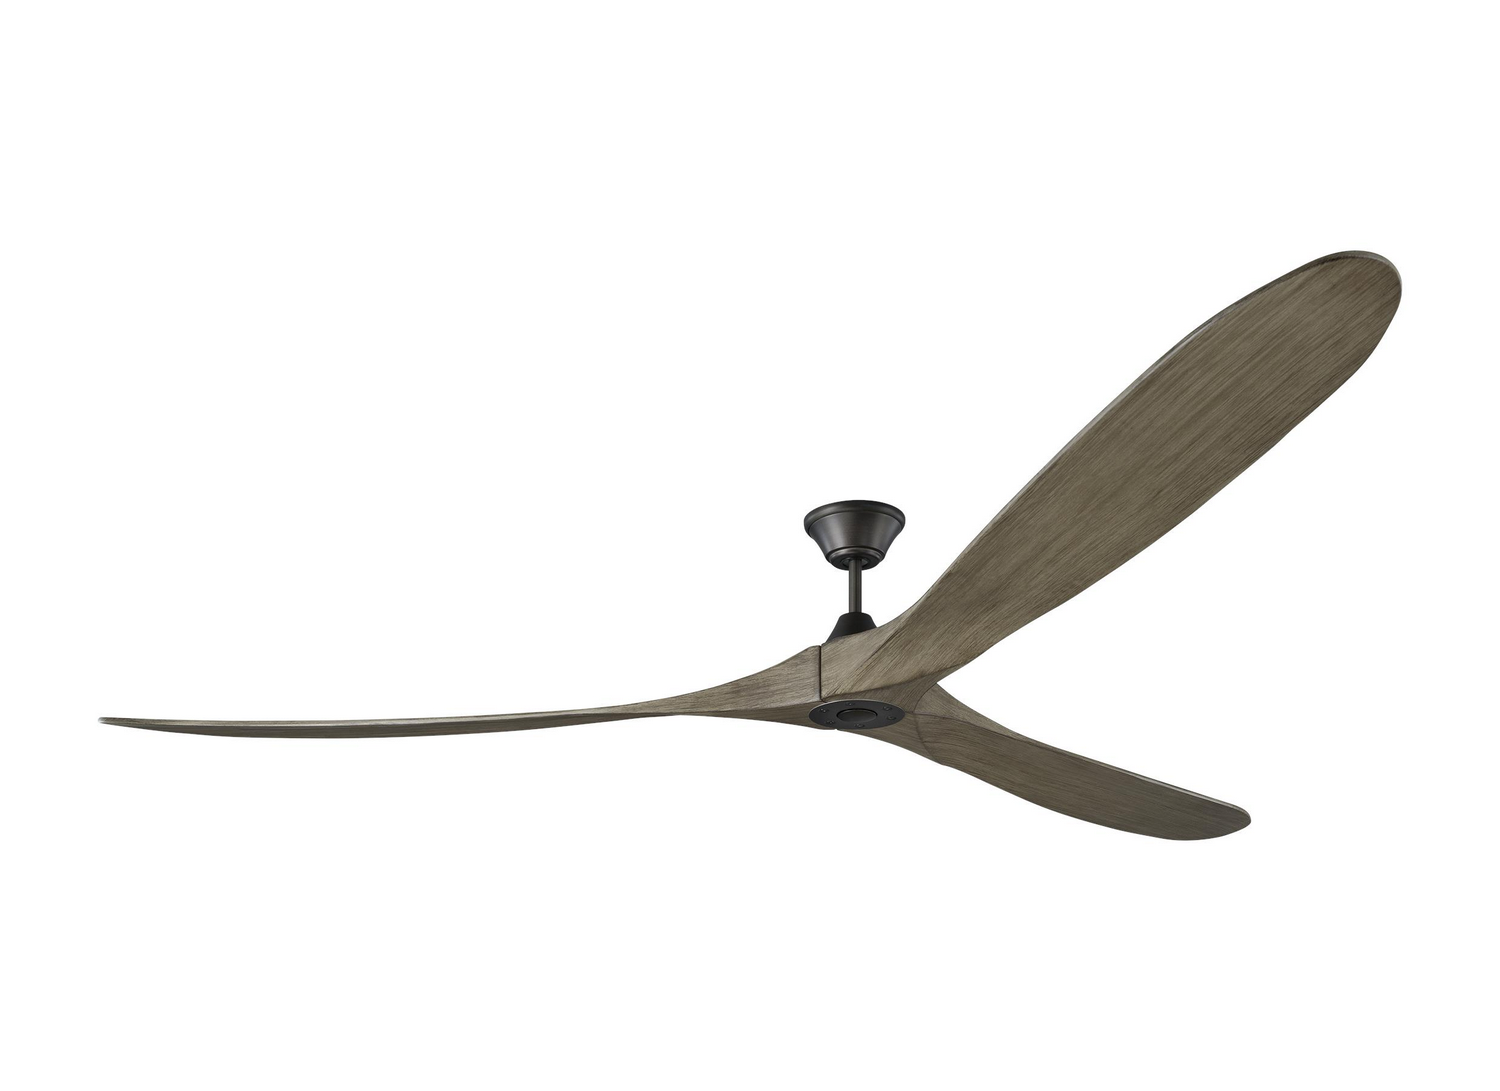 99 inchCeiling Fan from the Maverick Grand collection by Monte Carlo 3MAVR99AGP